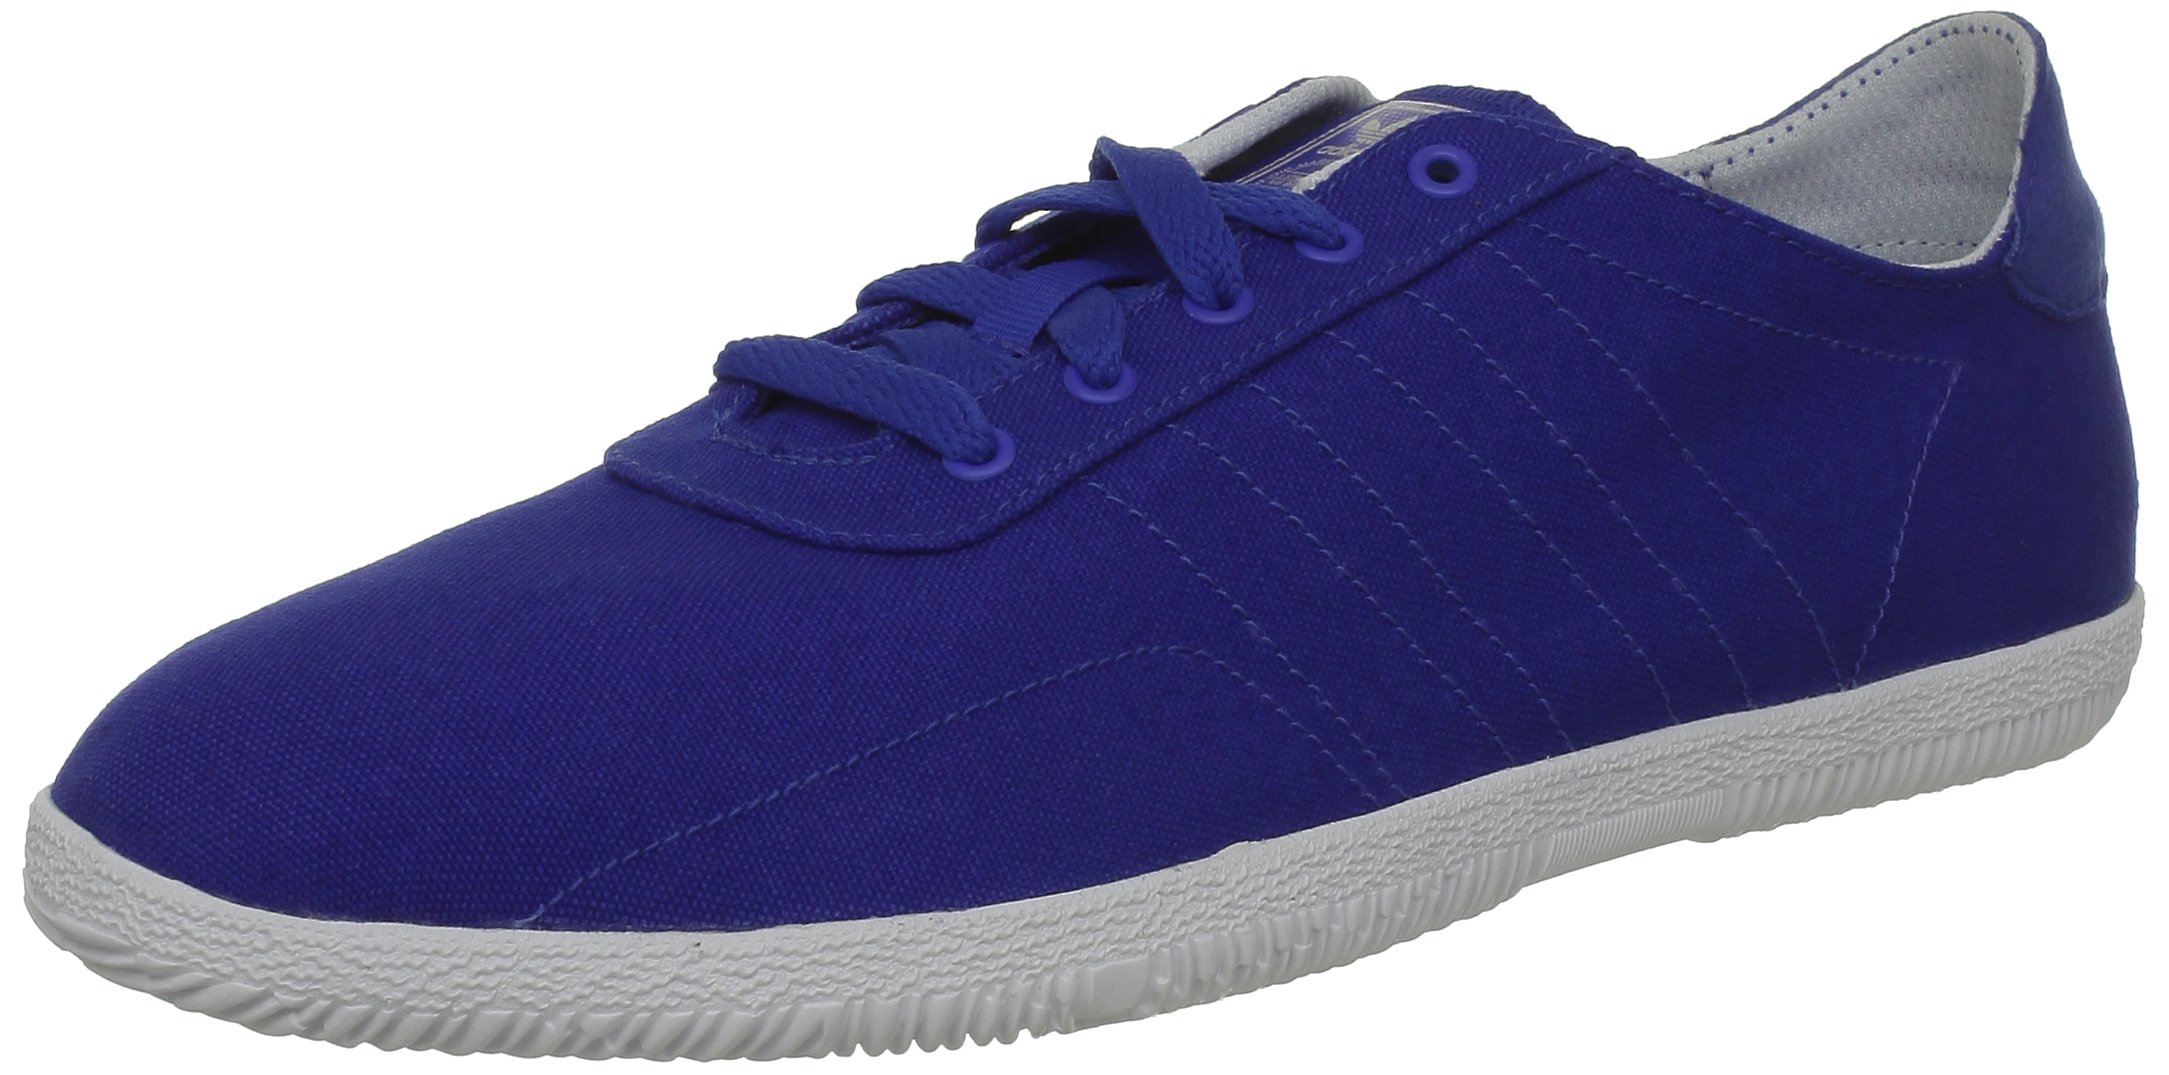 3Baskets Adidas Eu Blue Mode white Originals Plimsole HommeBleutrue Ftw42 QsrhtdCx